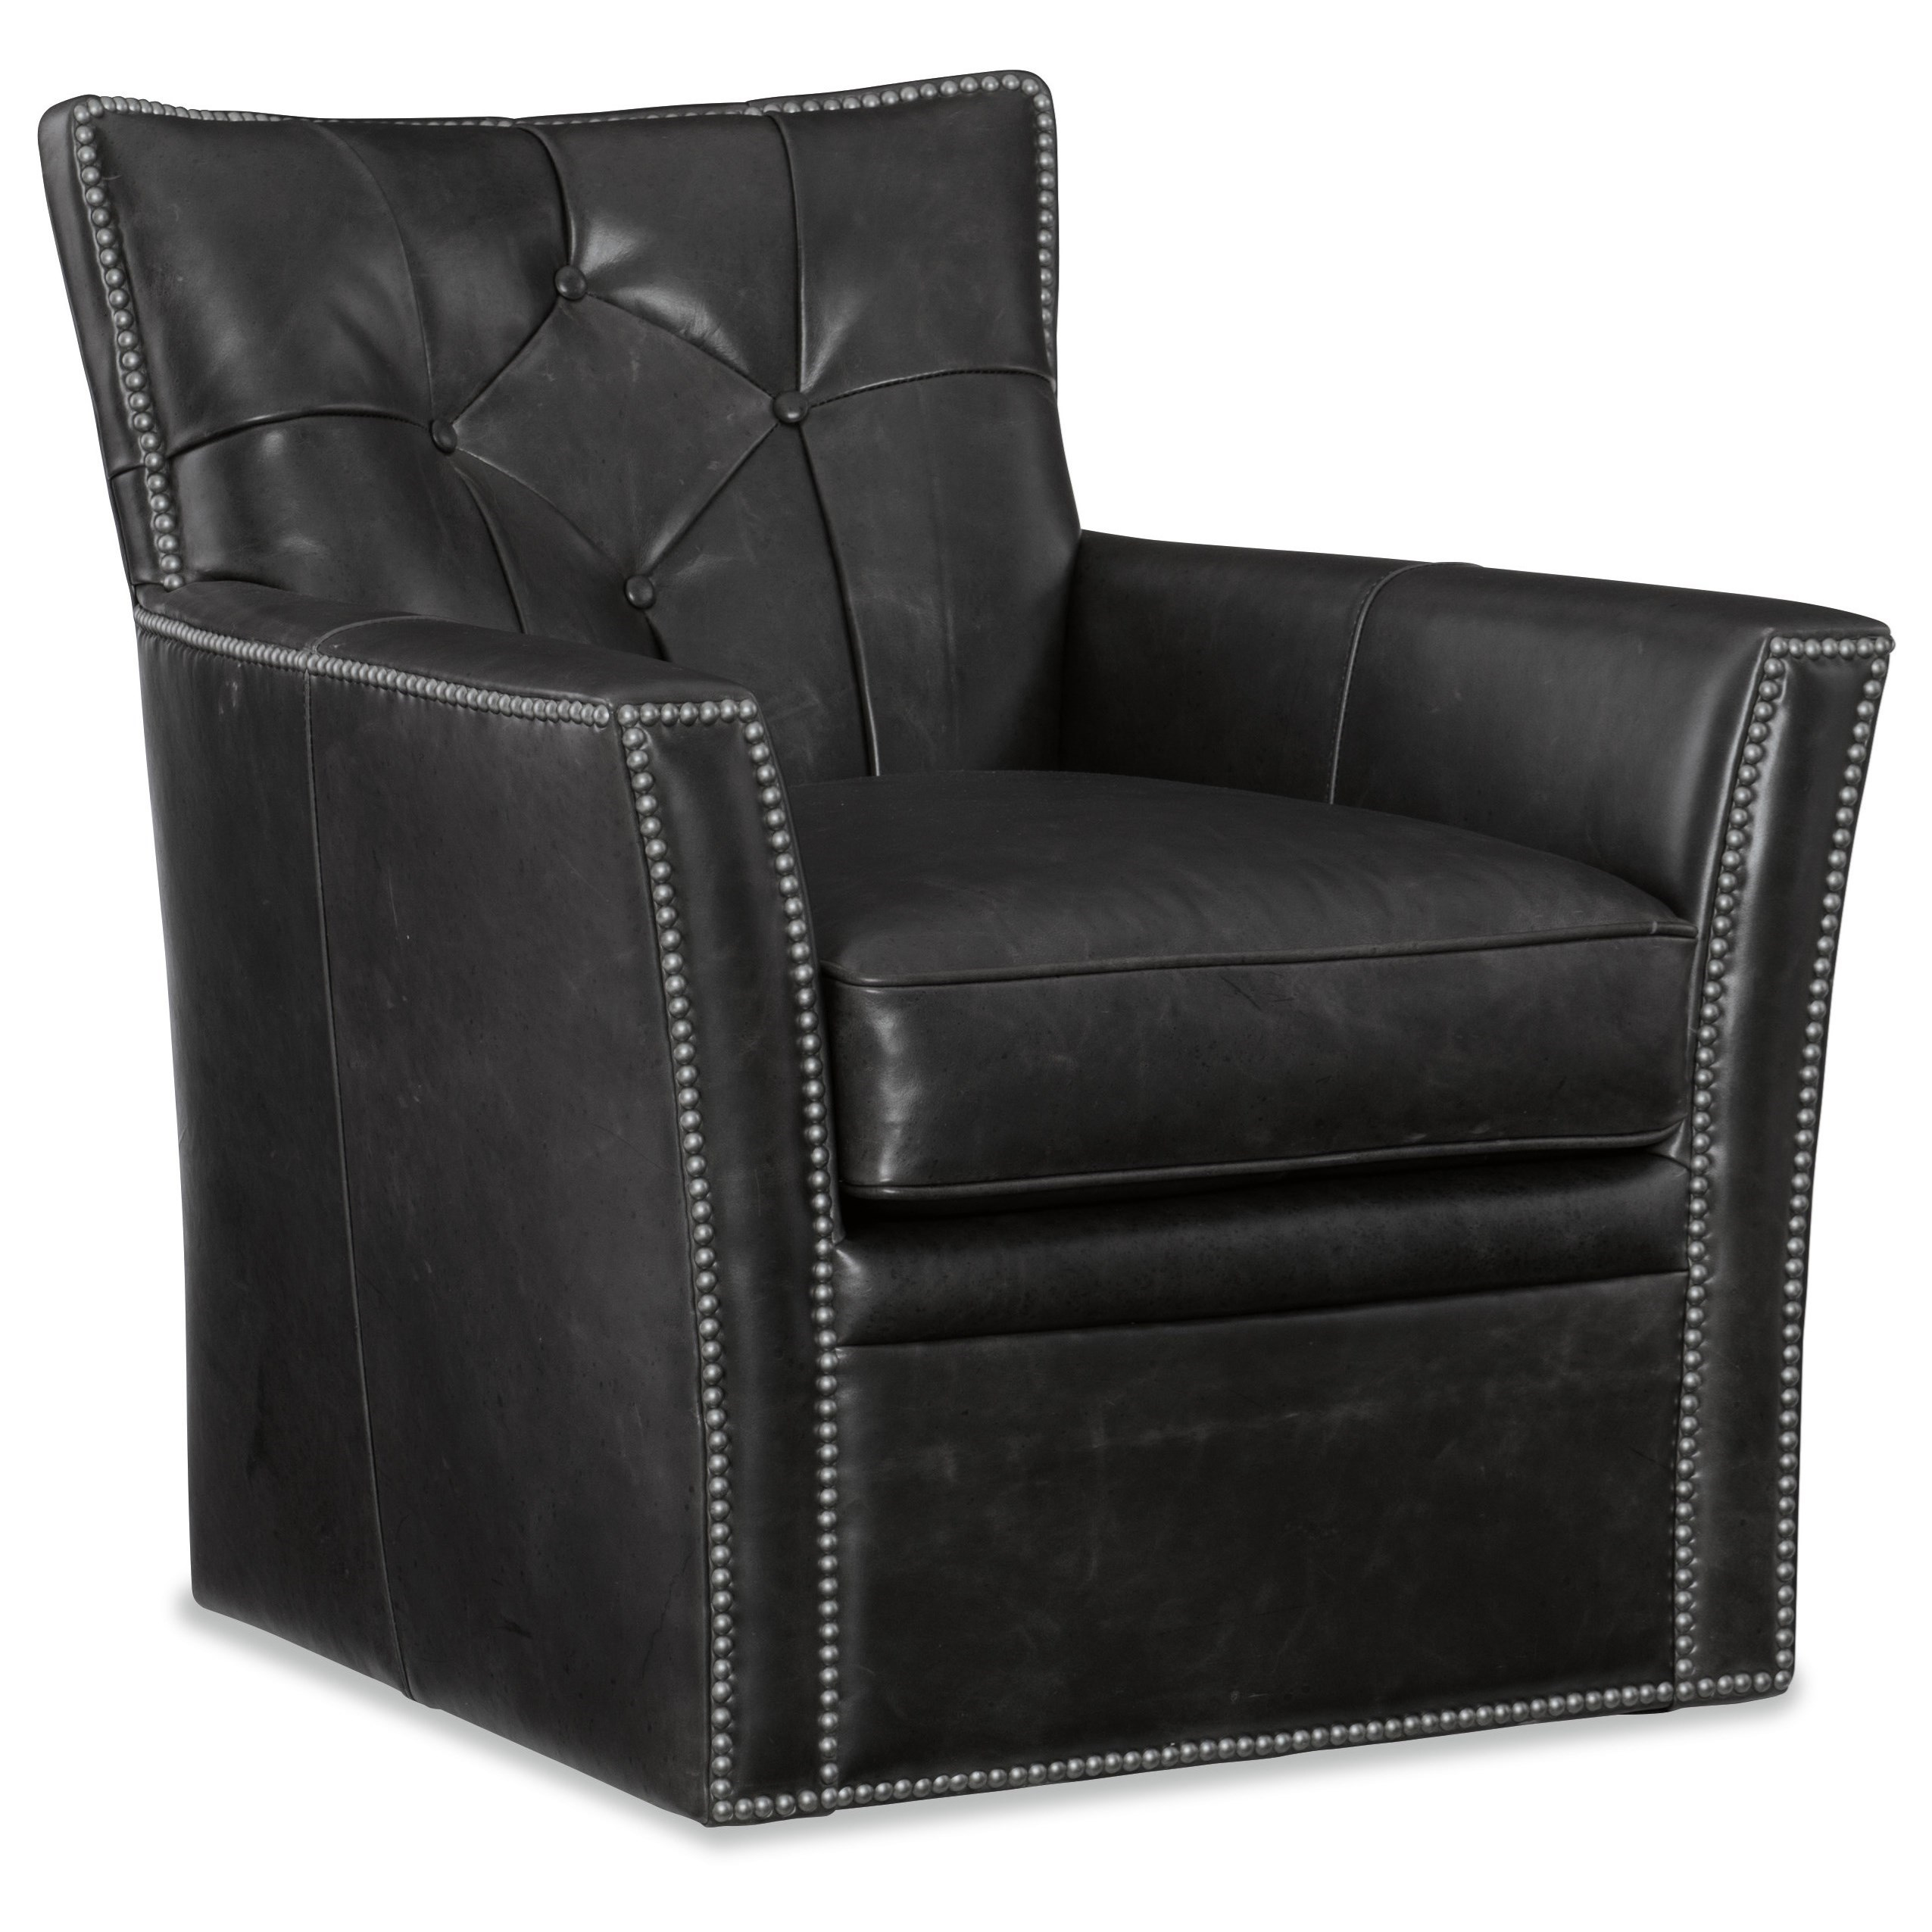 Hooker Furniture Conner Cc503 Sw 096 Transitional Leather